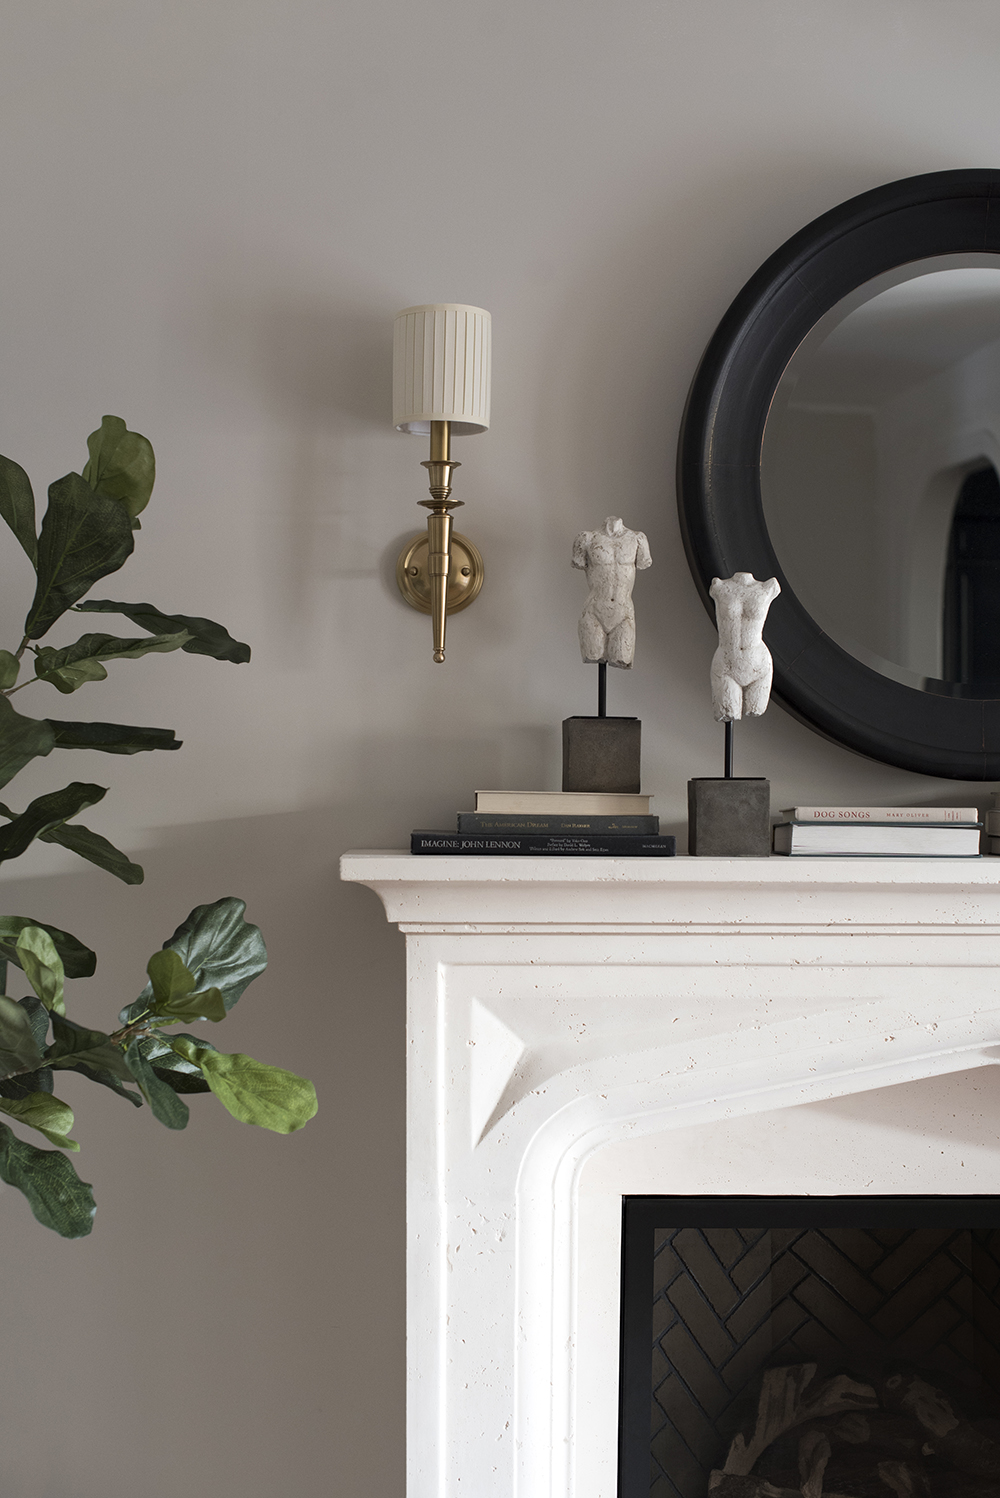 Wood Fireplace Inserts Lowes Inspirational Fireplace Makeover Cast Mantel Options Room for Tuesday